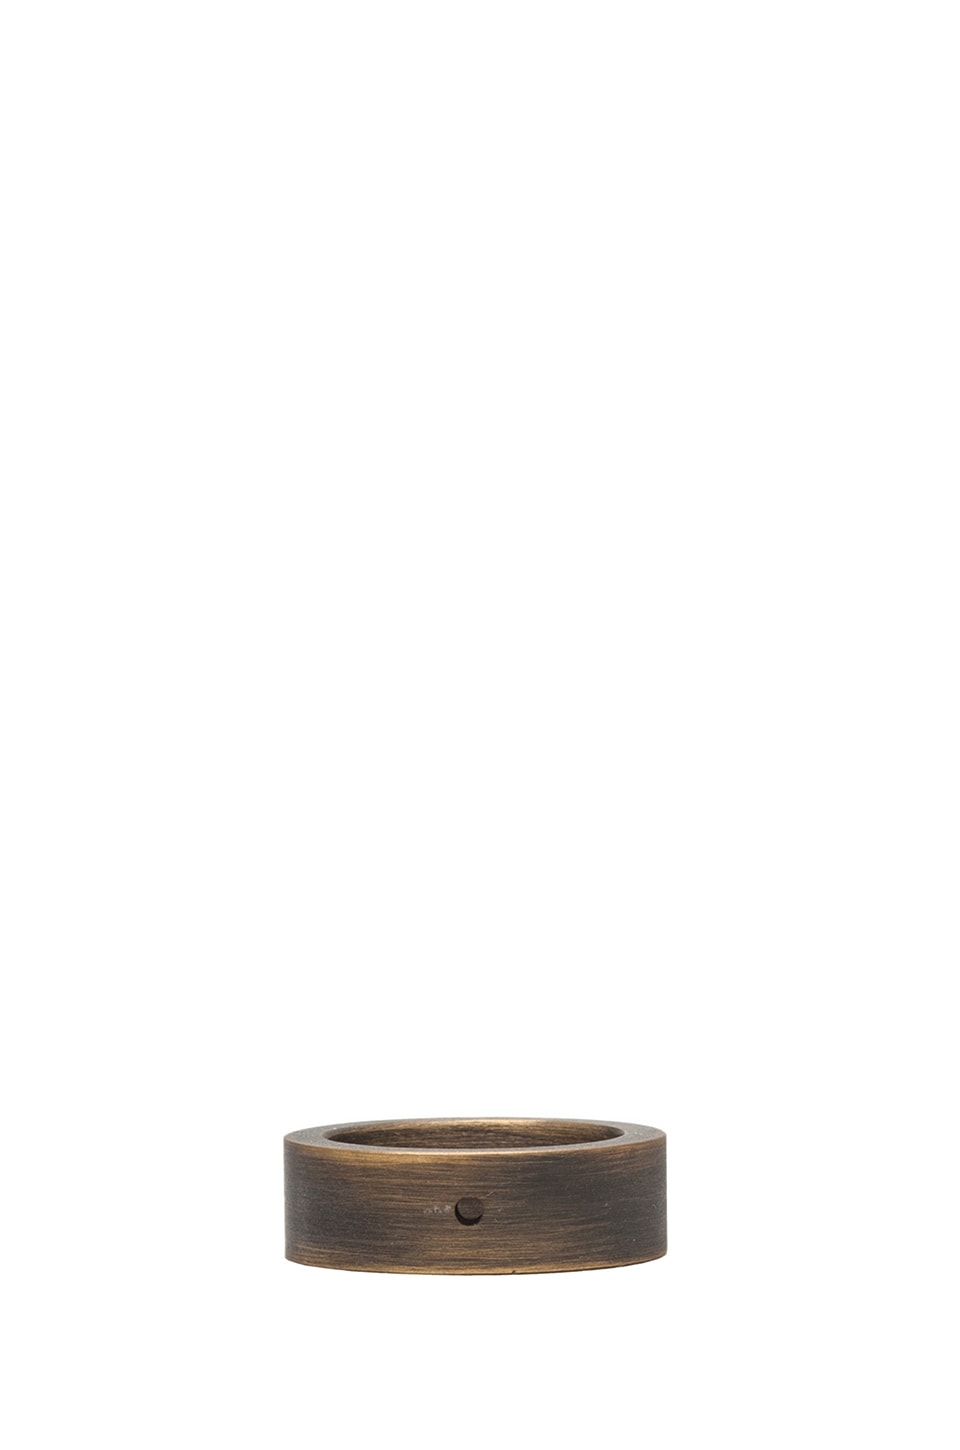 Marmol Radziner Standard Heavyweight Stacking Ring in Distressed Bronze